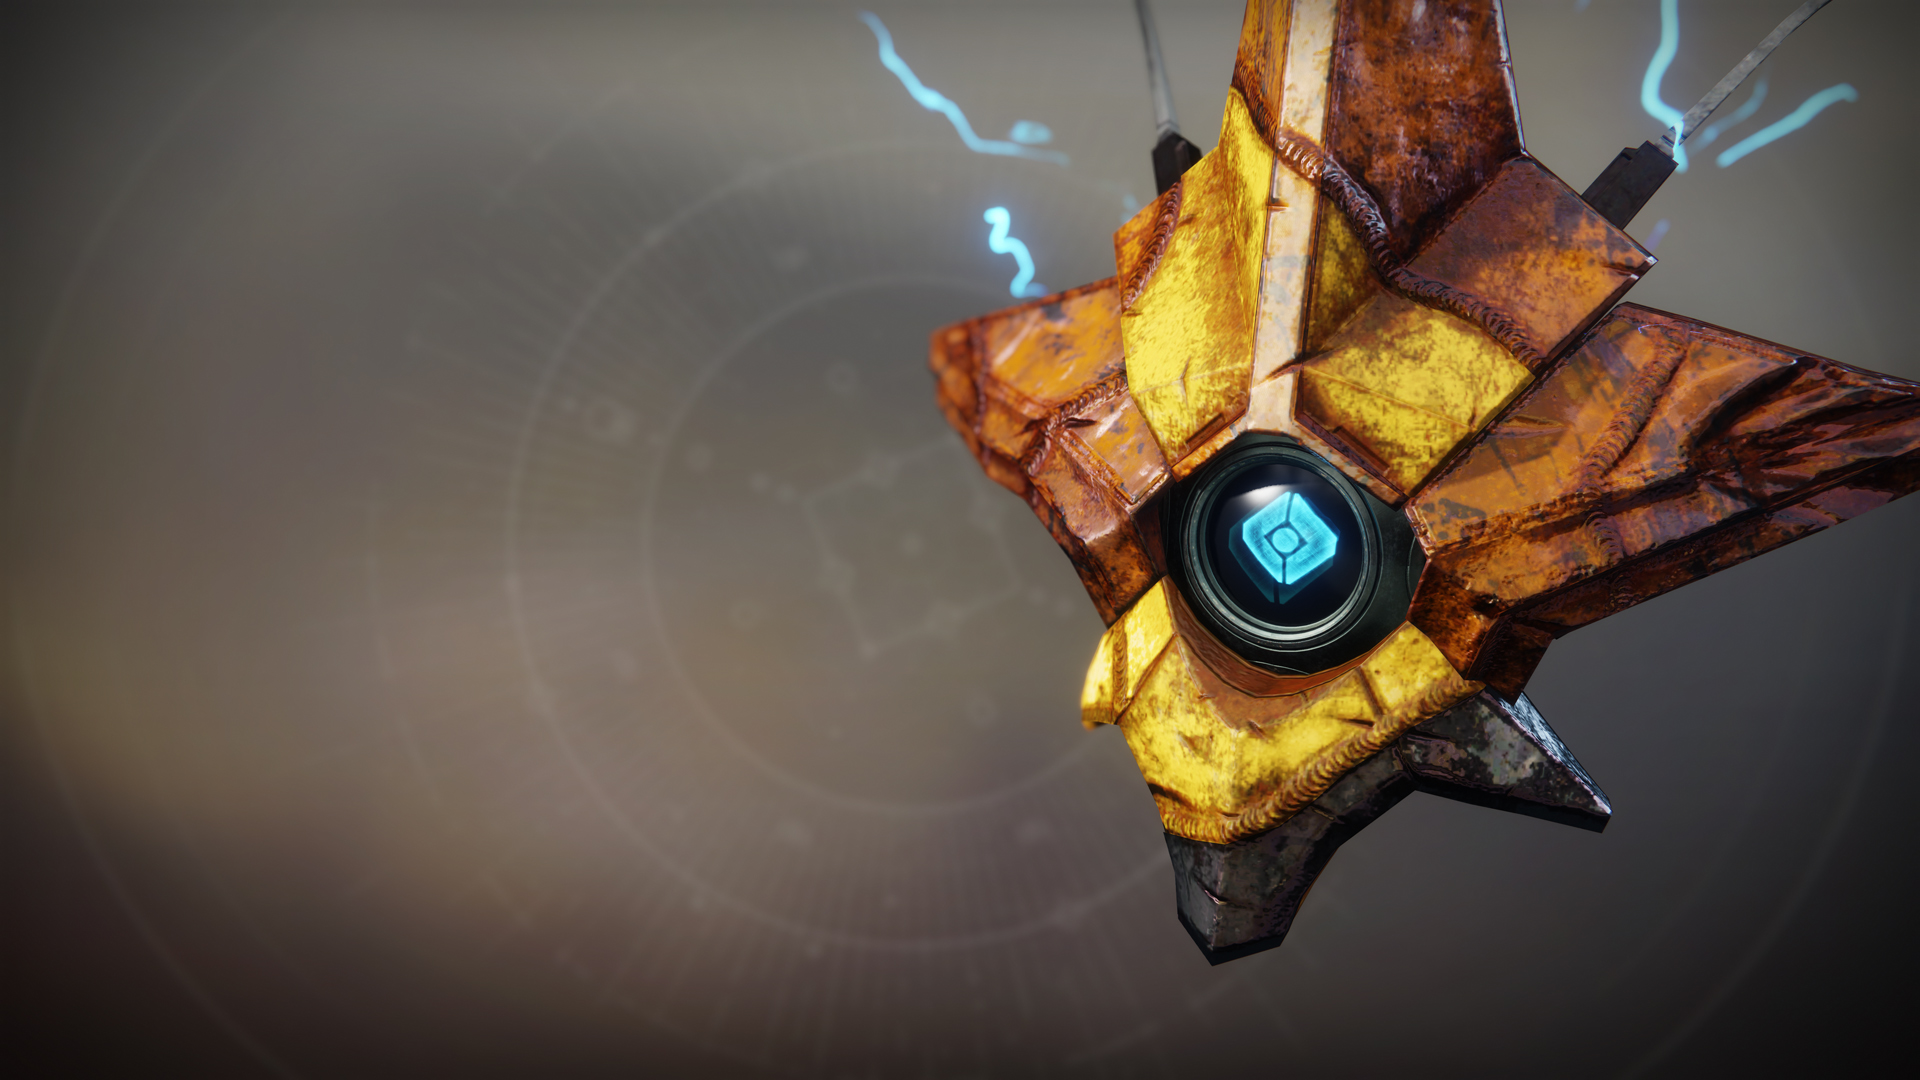 Festival of the Lost Event - Destiny 2 Предмет